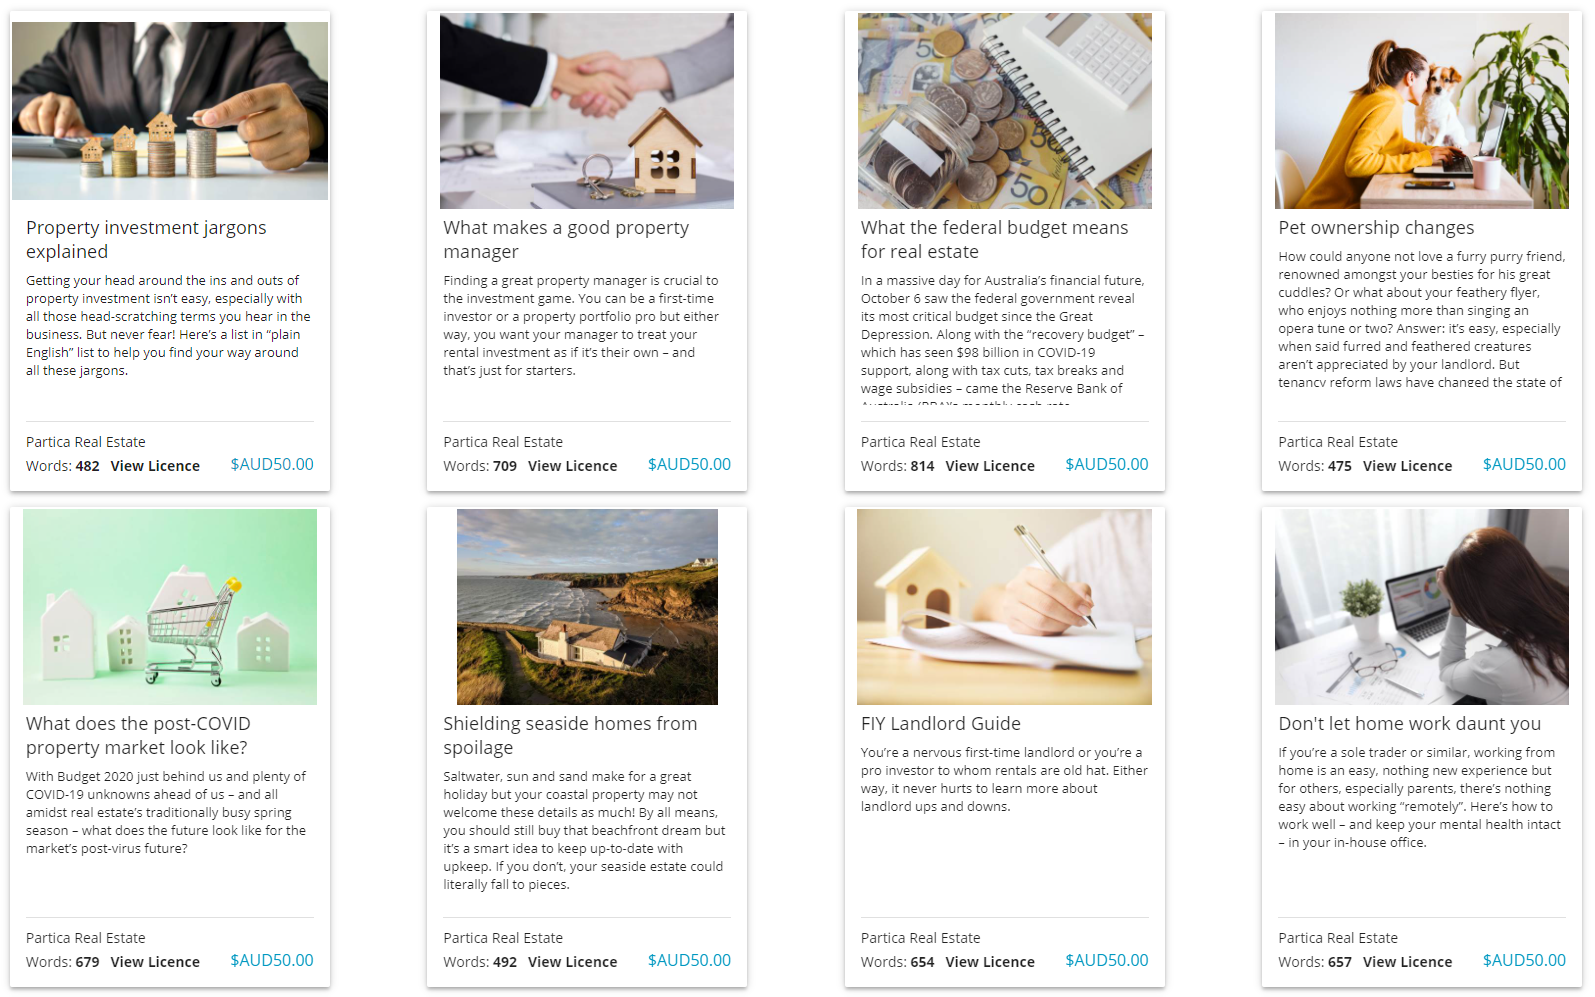 realestatearticles